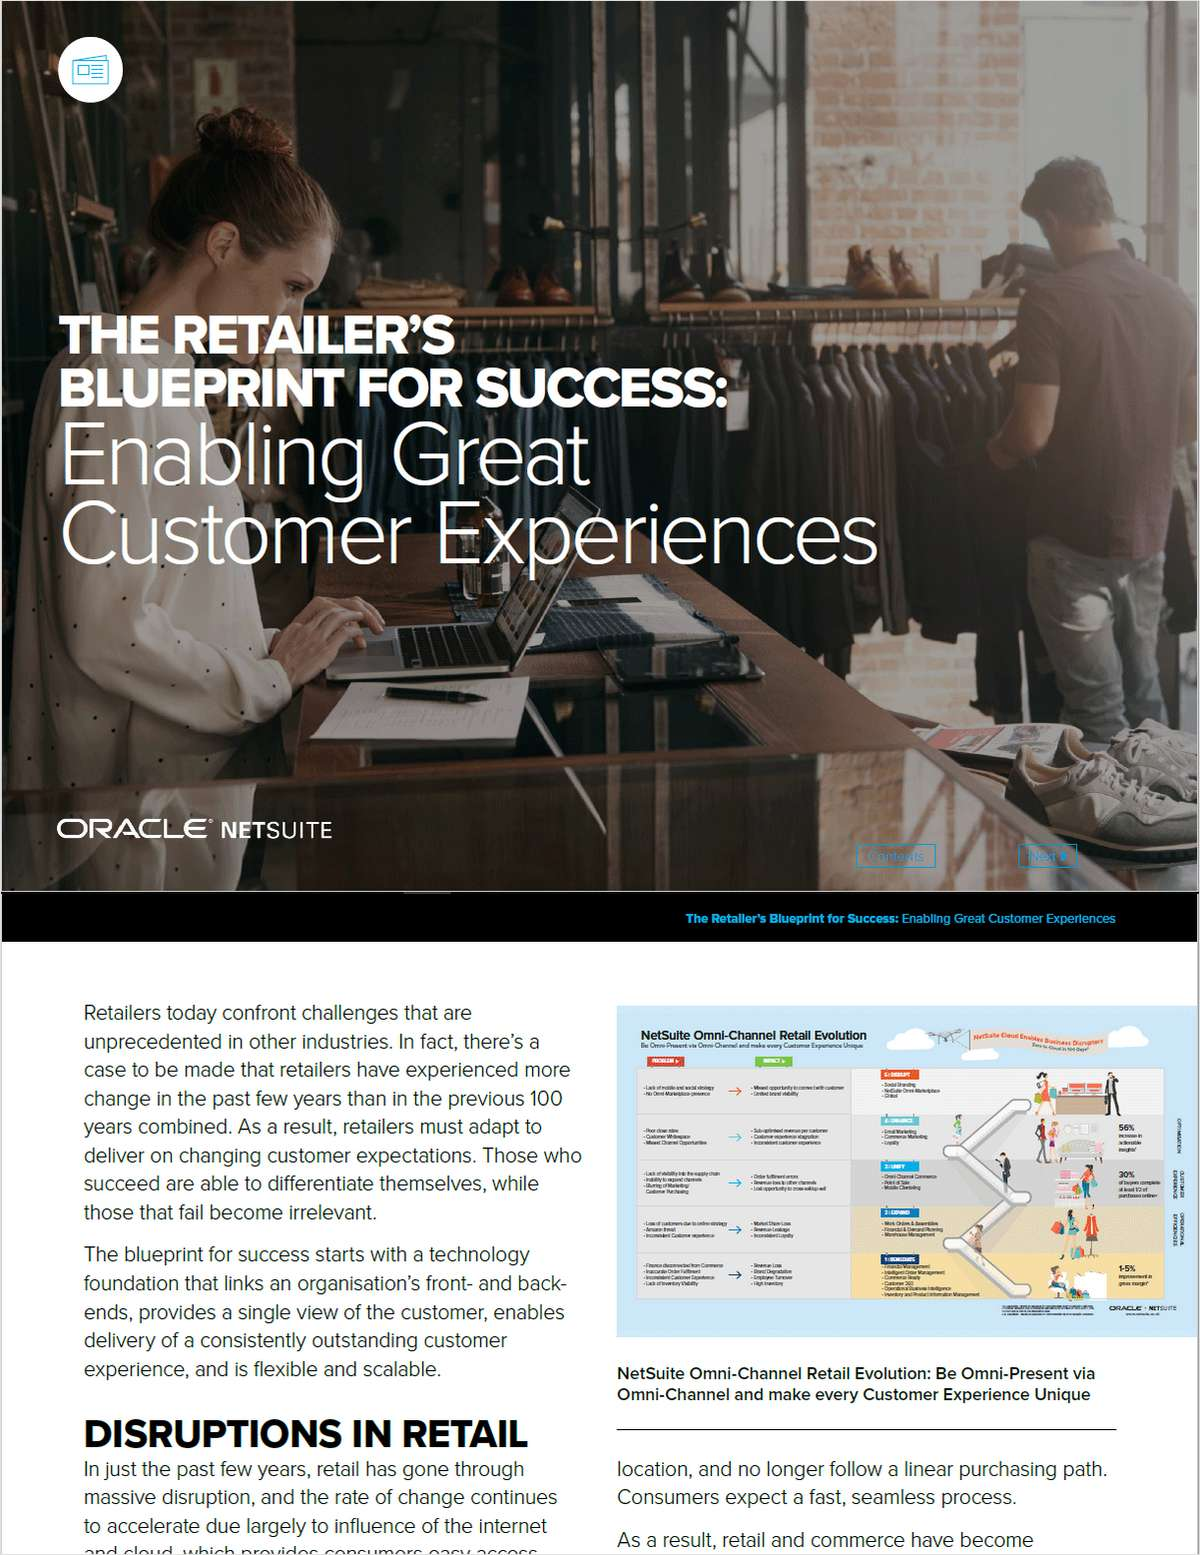 The Retailer's Blueprint for Success: Enabling Great Customer Experiences